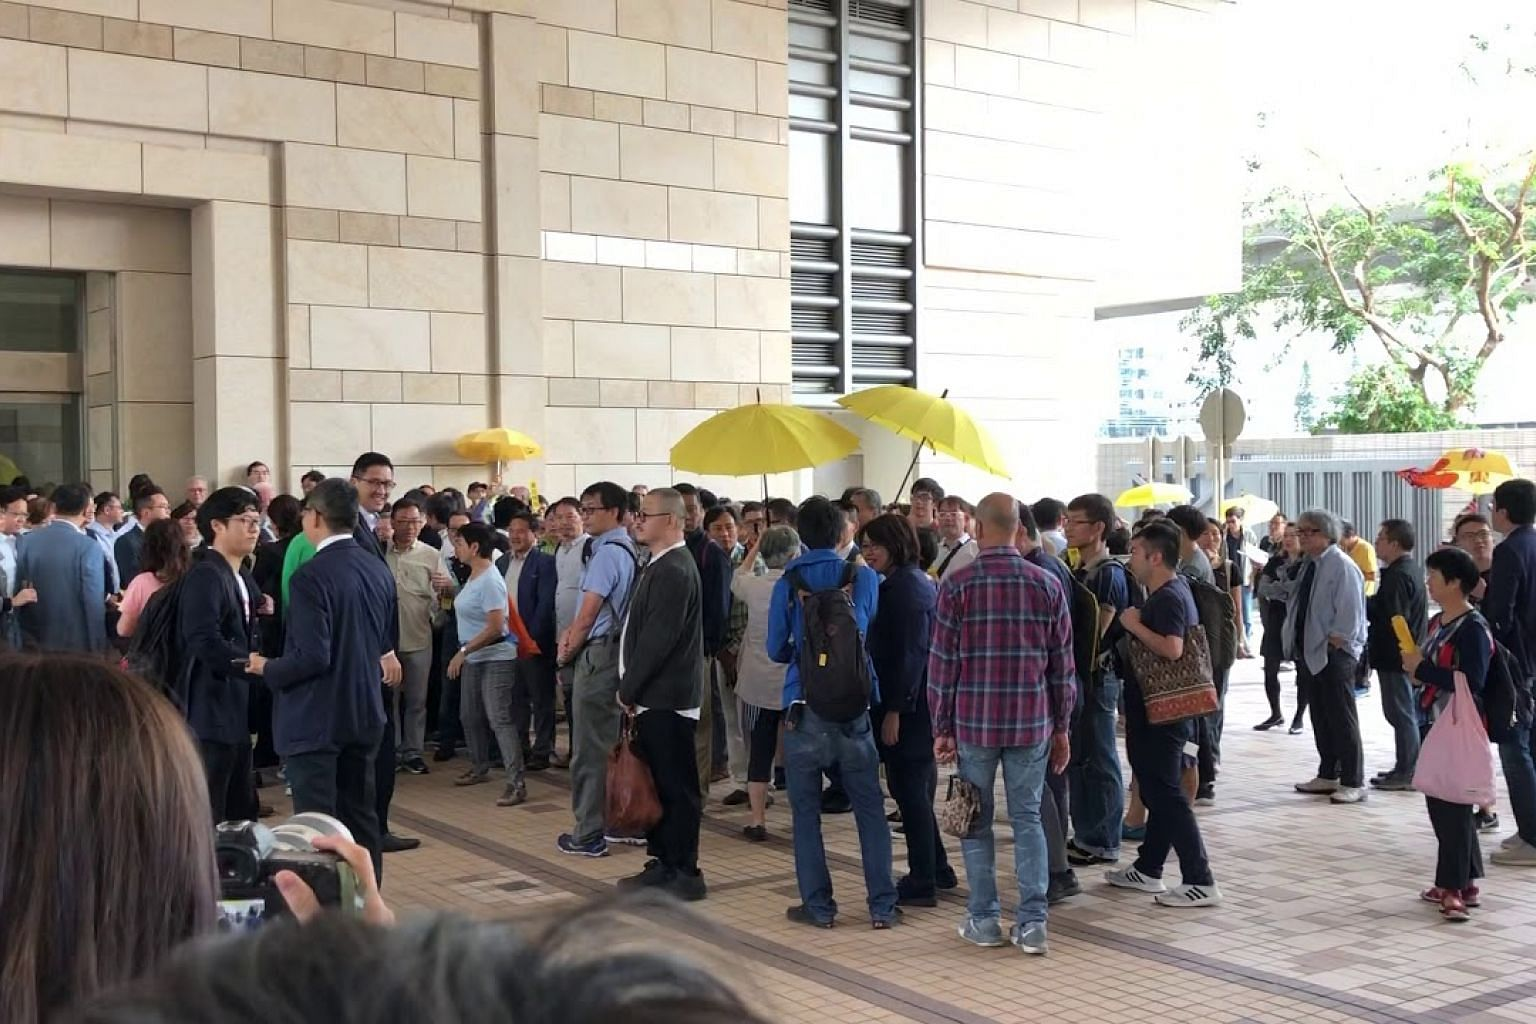 Supporters of Hong Kong democracy leaders outside court before opening of trial